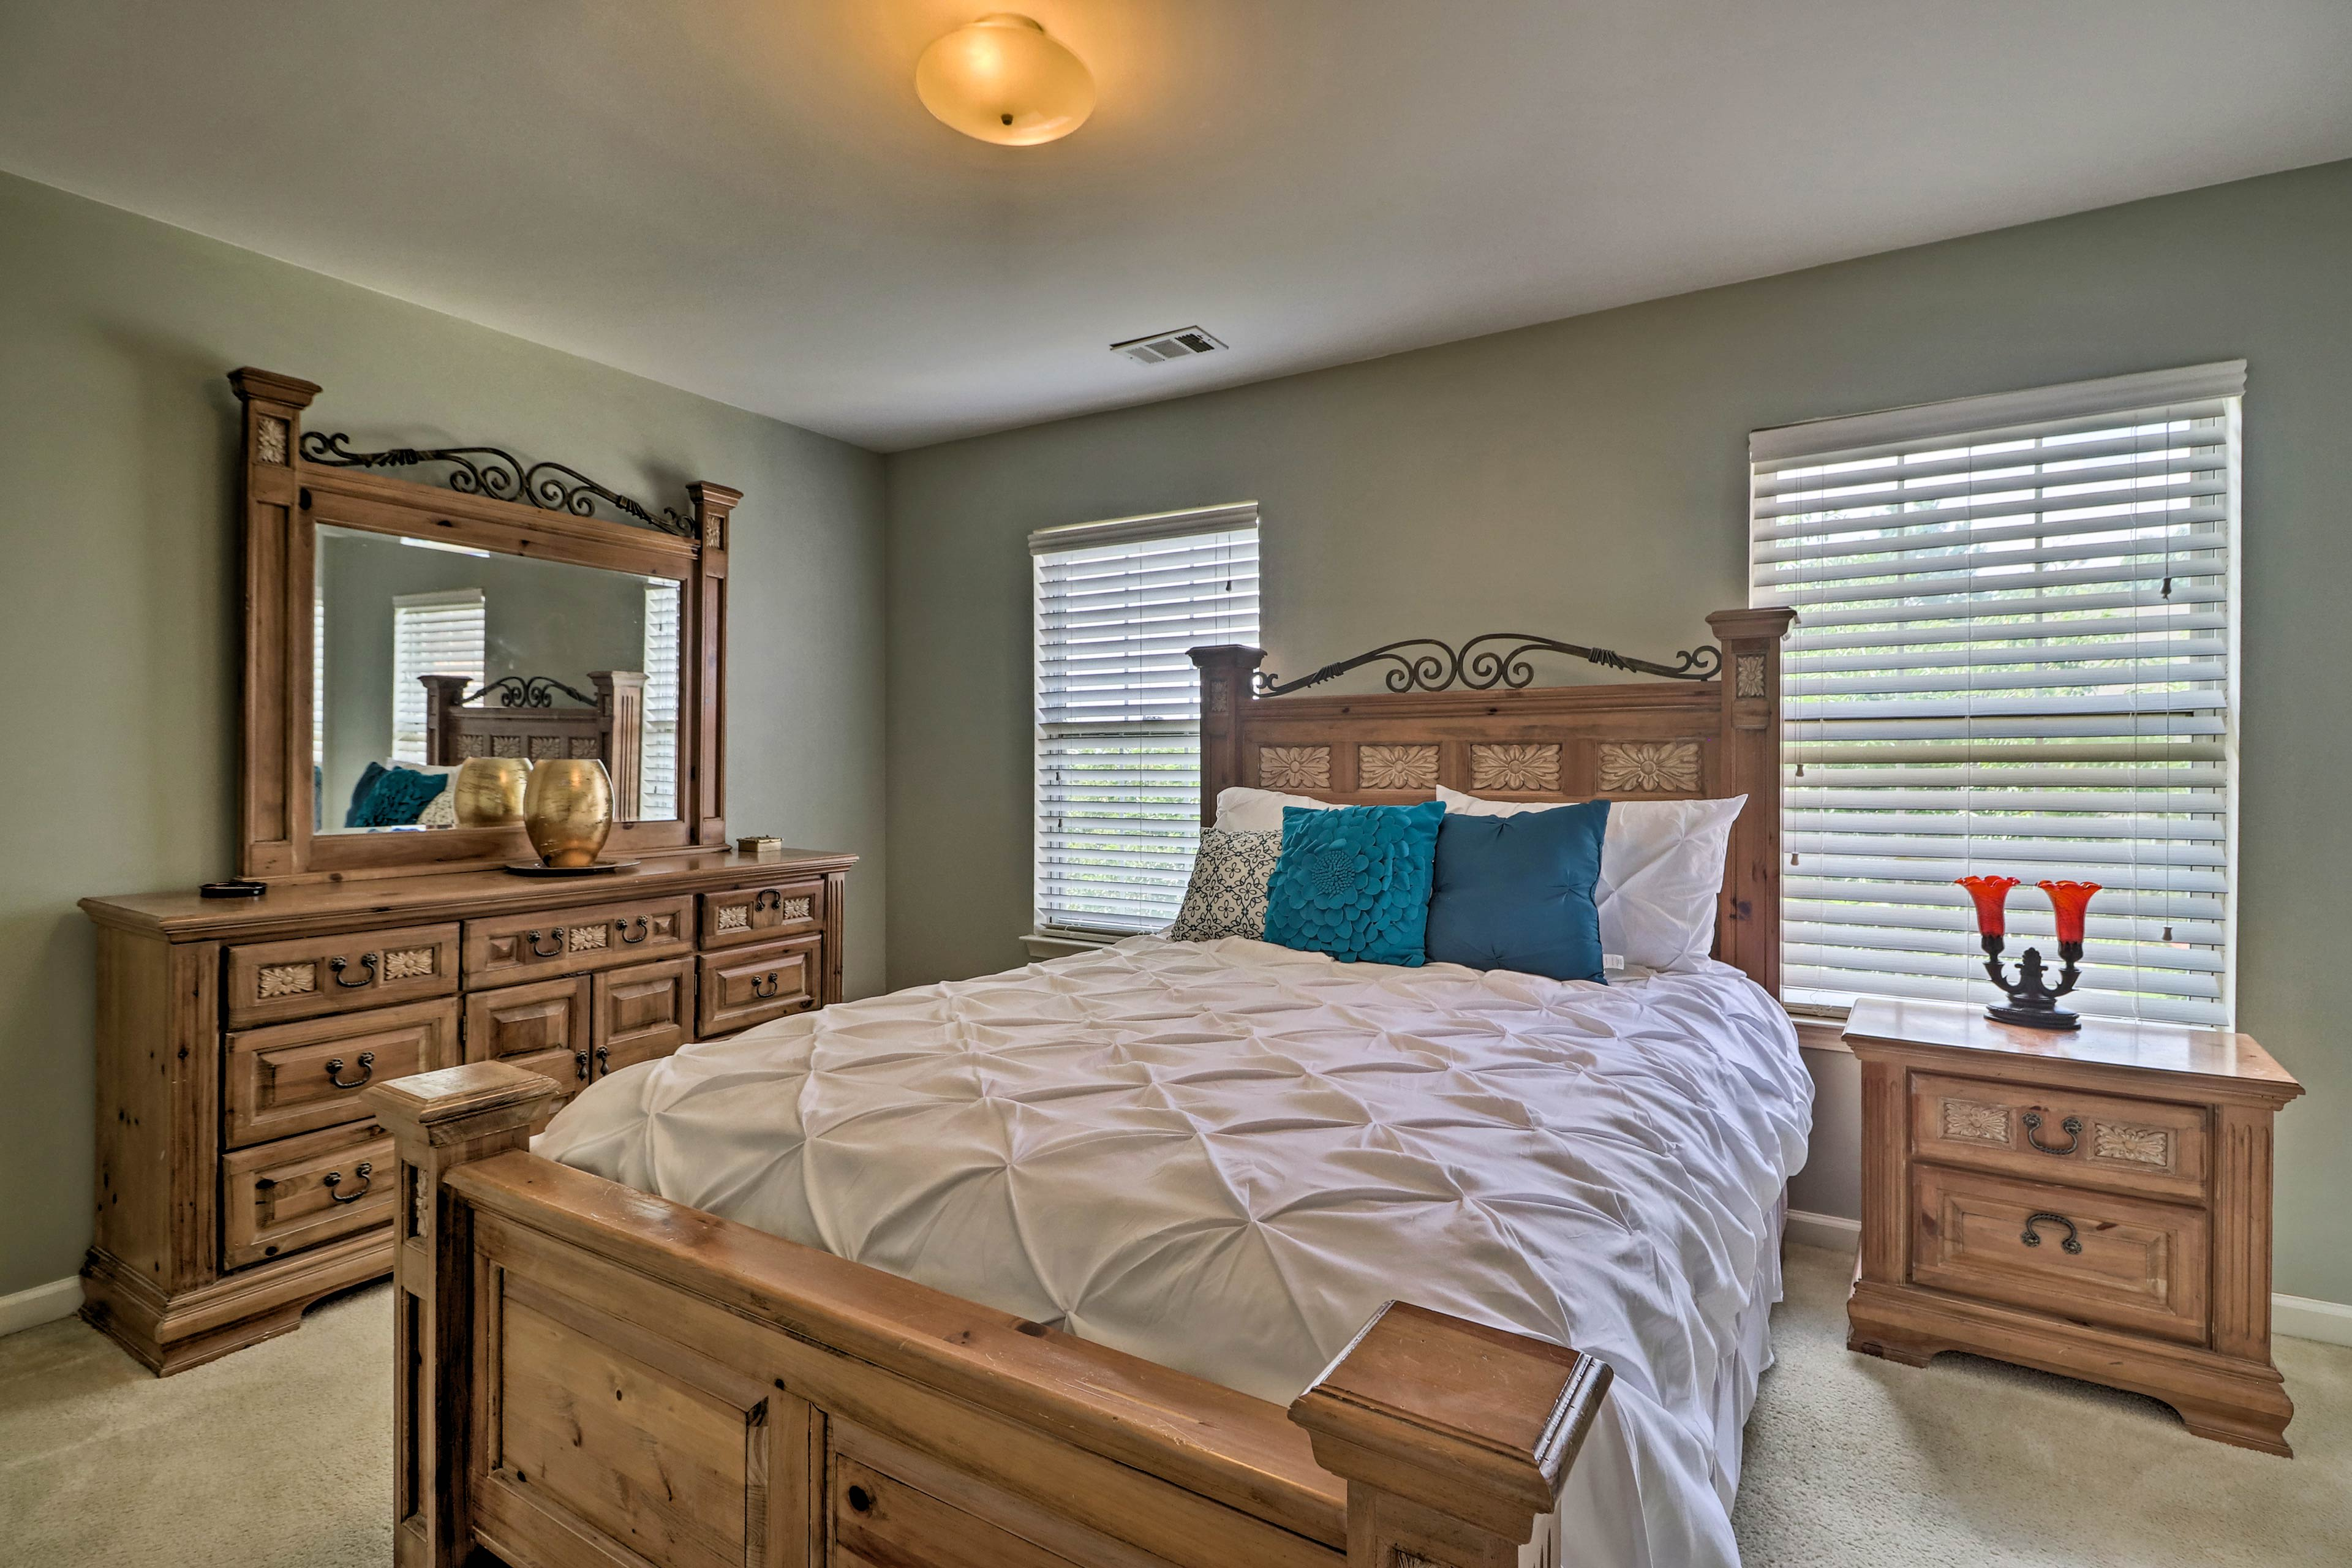 Catch up on your sleep in this queen bed.